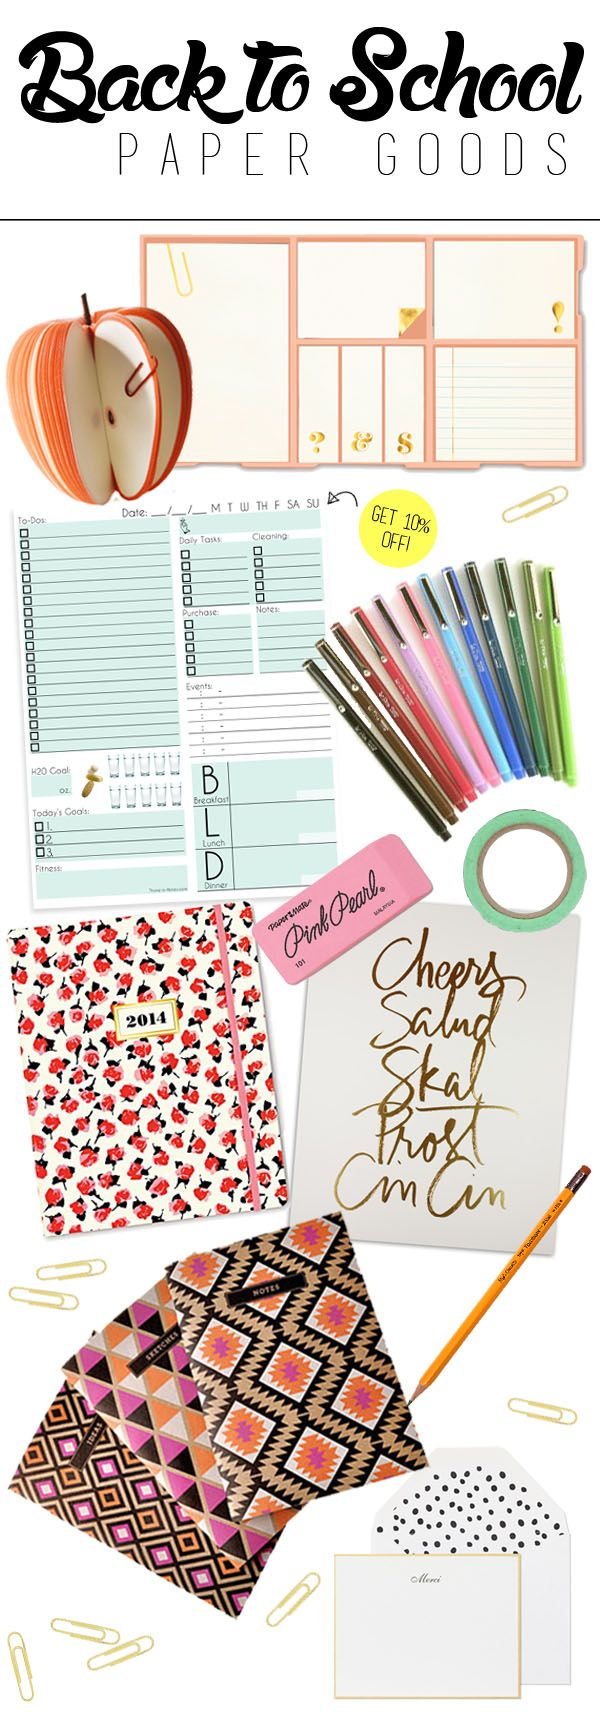 Back To School Paper Goods: products to get  you organized and stylish this year.